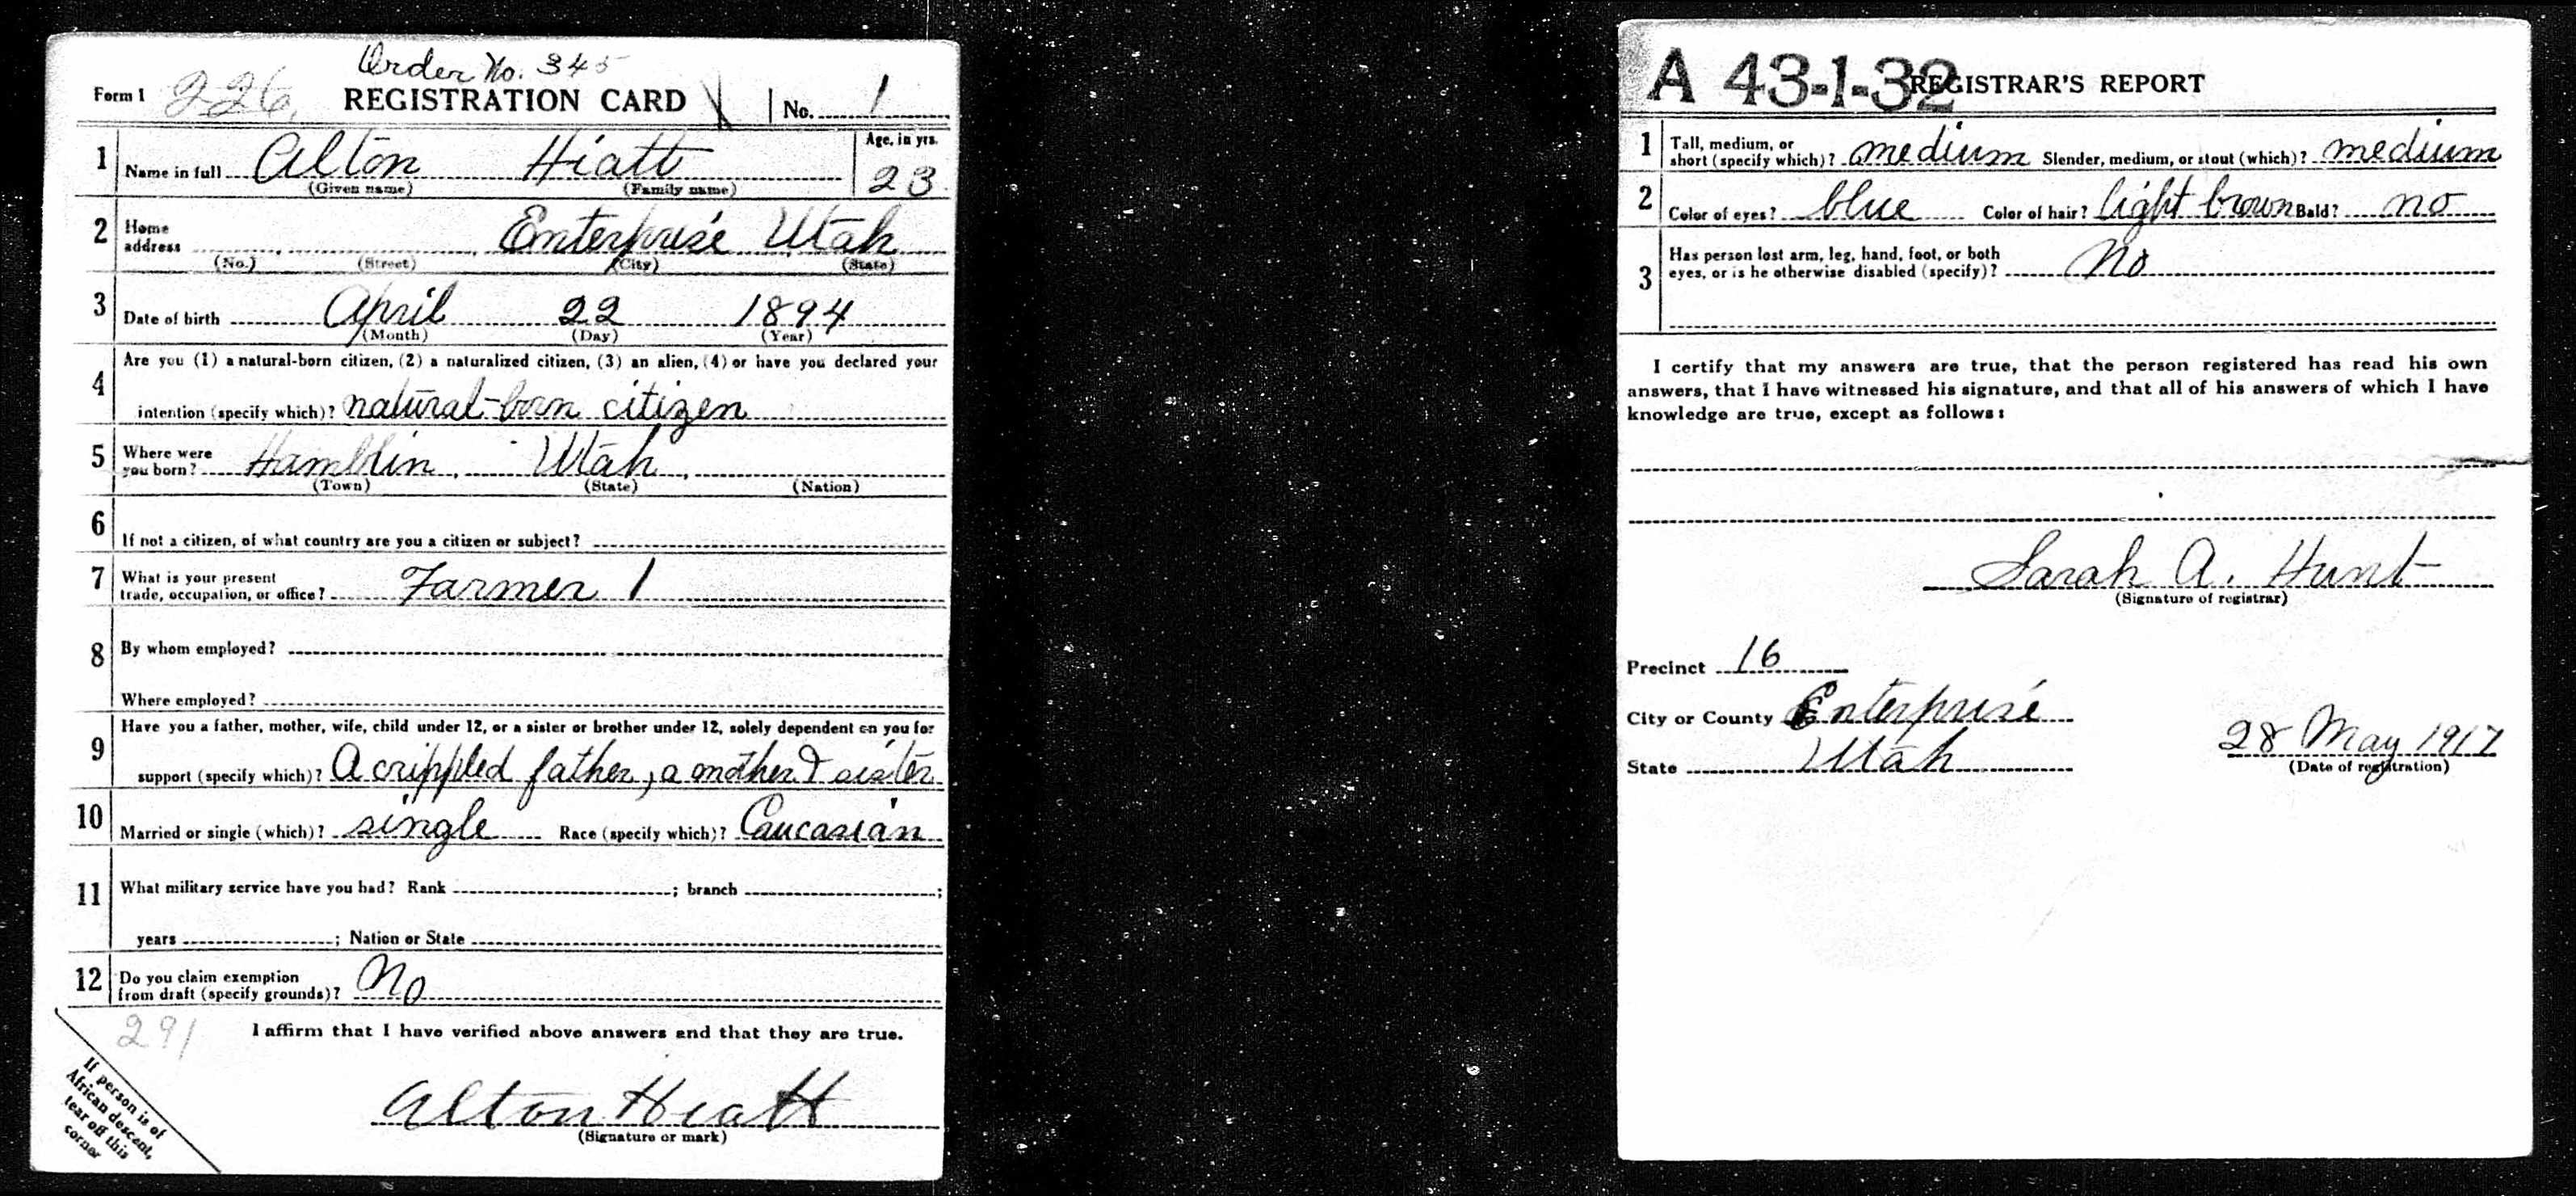 Alton Hiatt's draft card. Photo credit: Ancestry.com